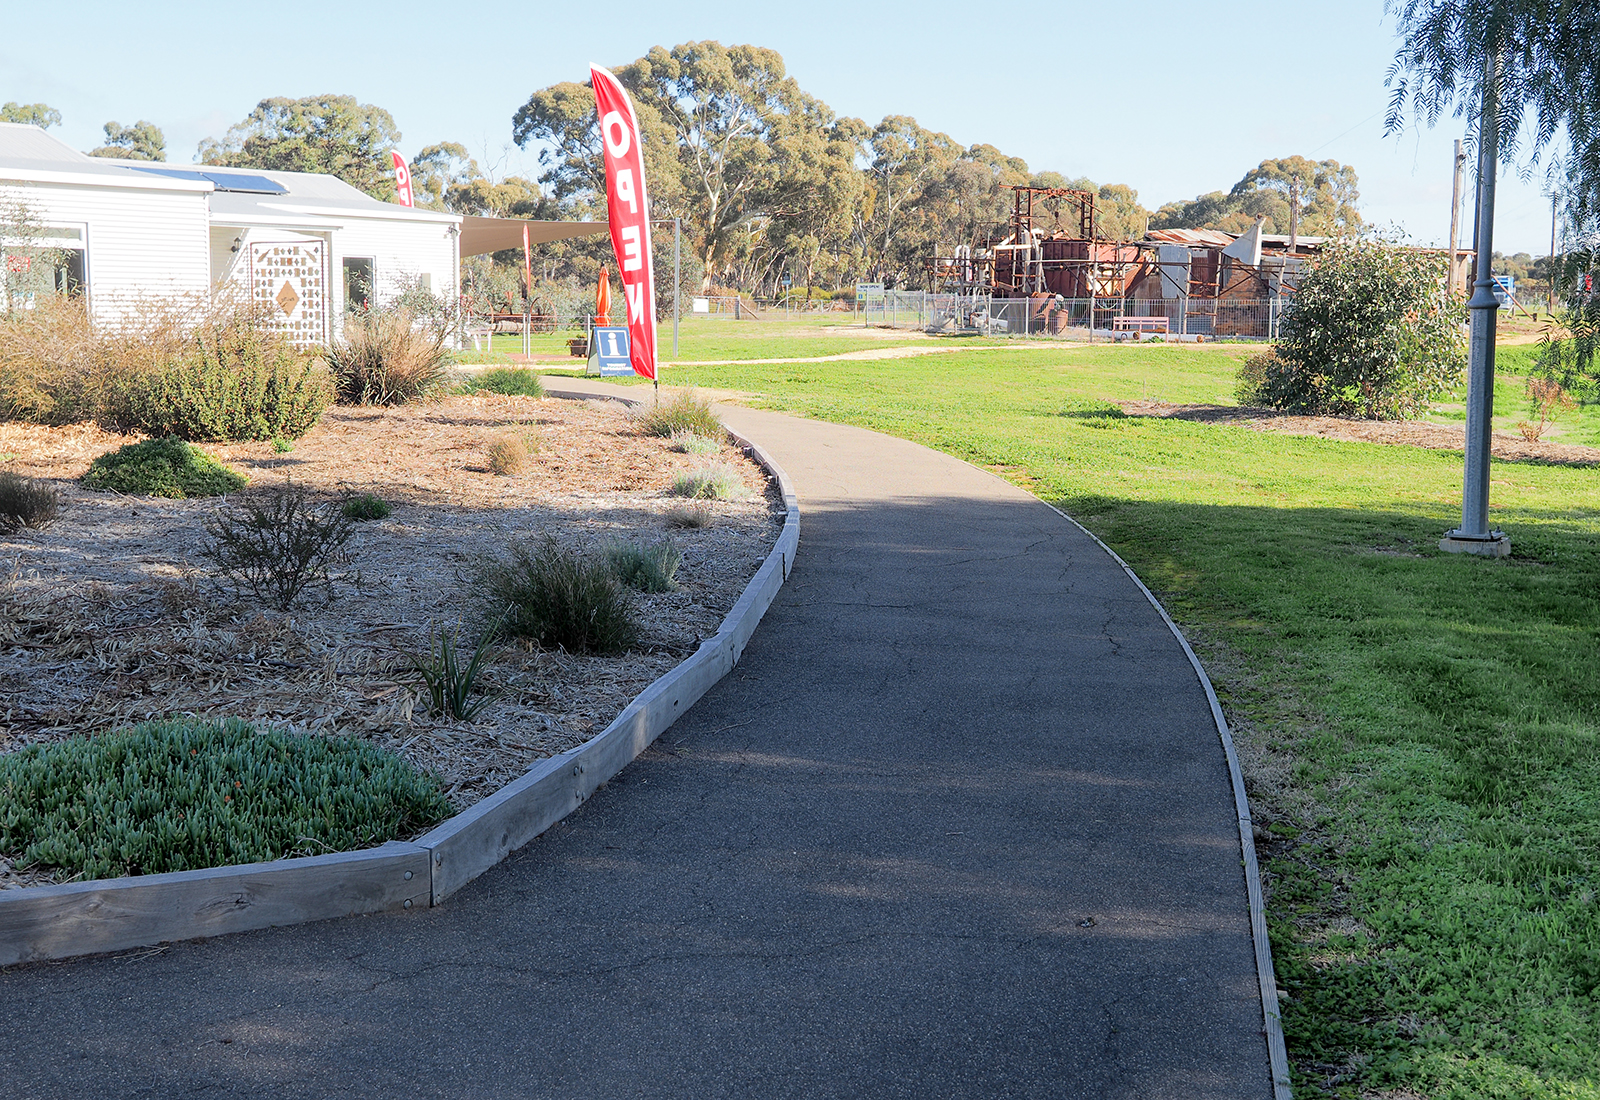 A well formed path allows access from the car park to the museum and cafe